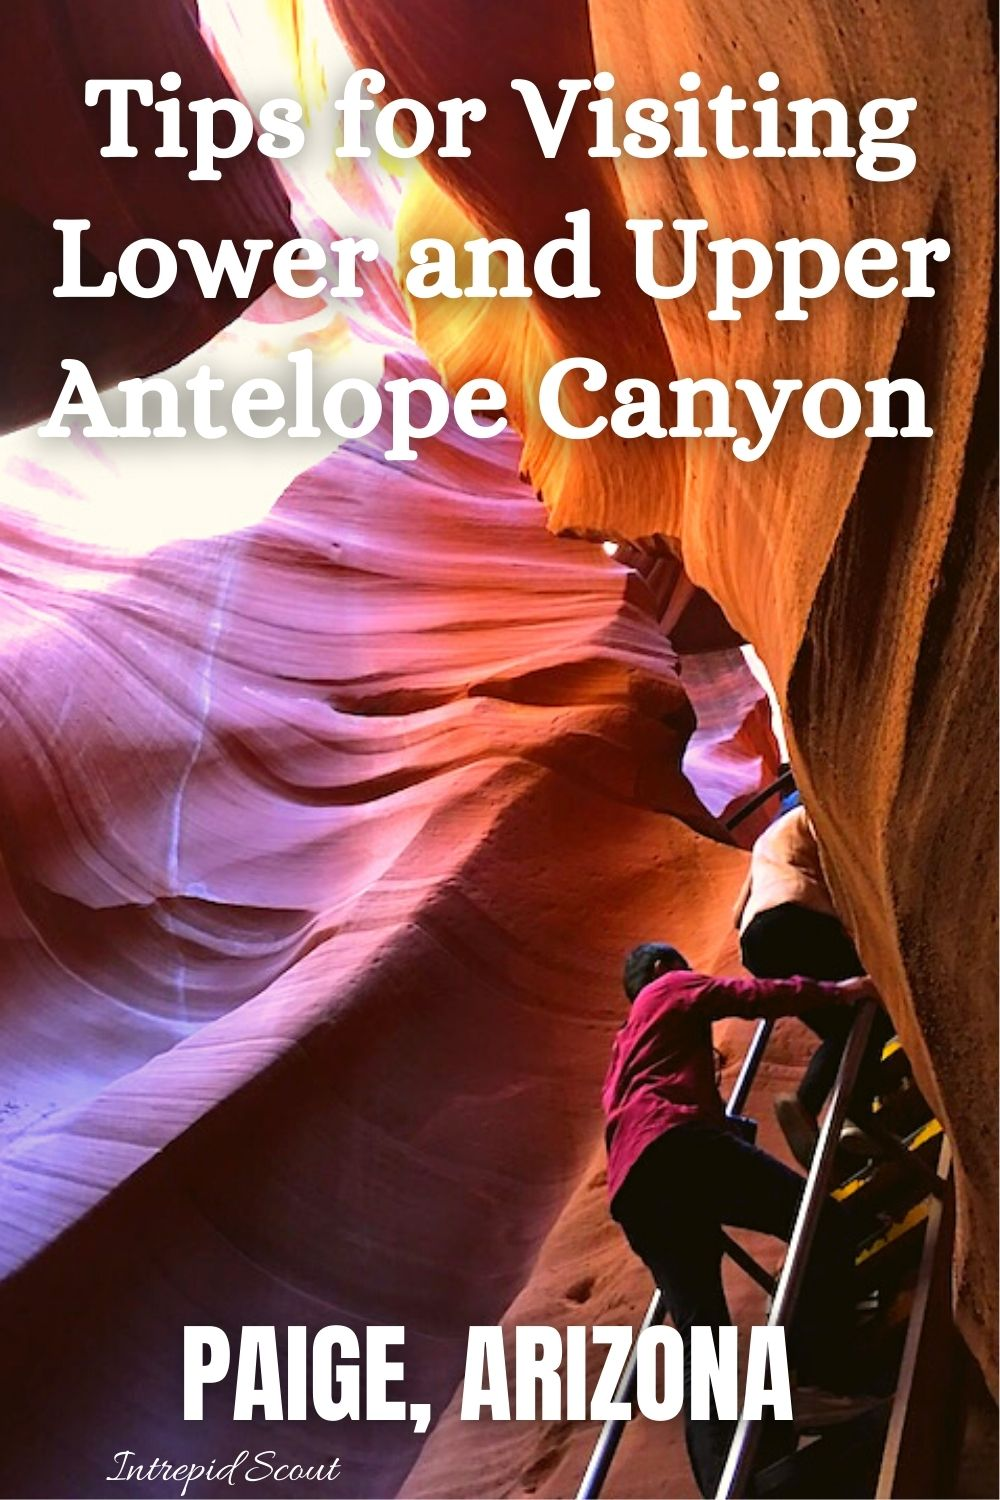 Tips for Visiting Lower and Upper Antelope Canyon